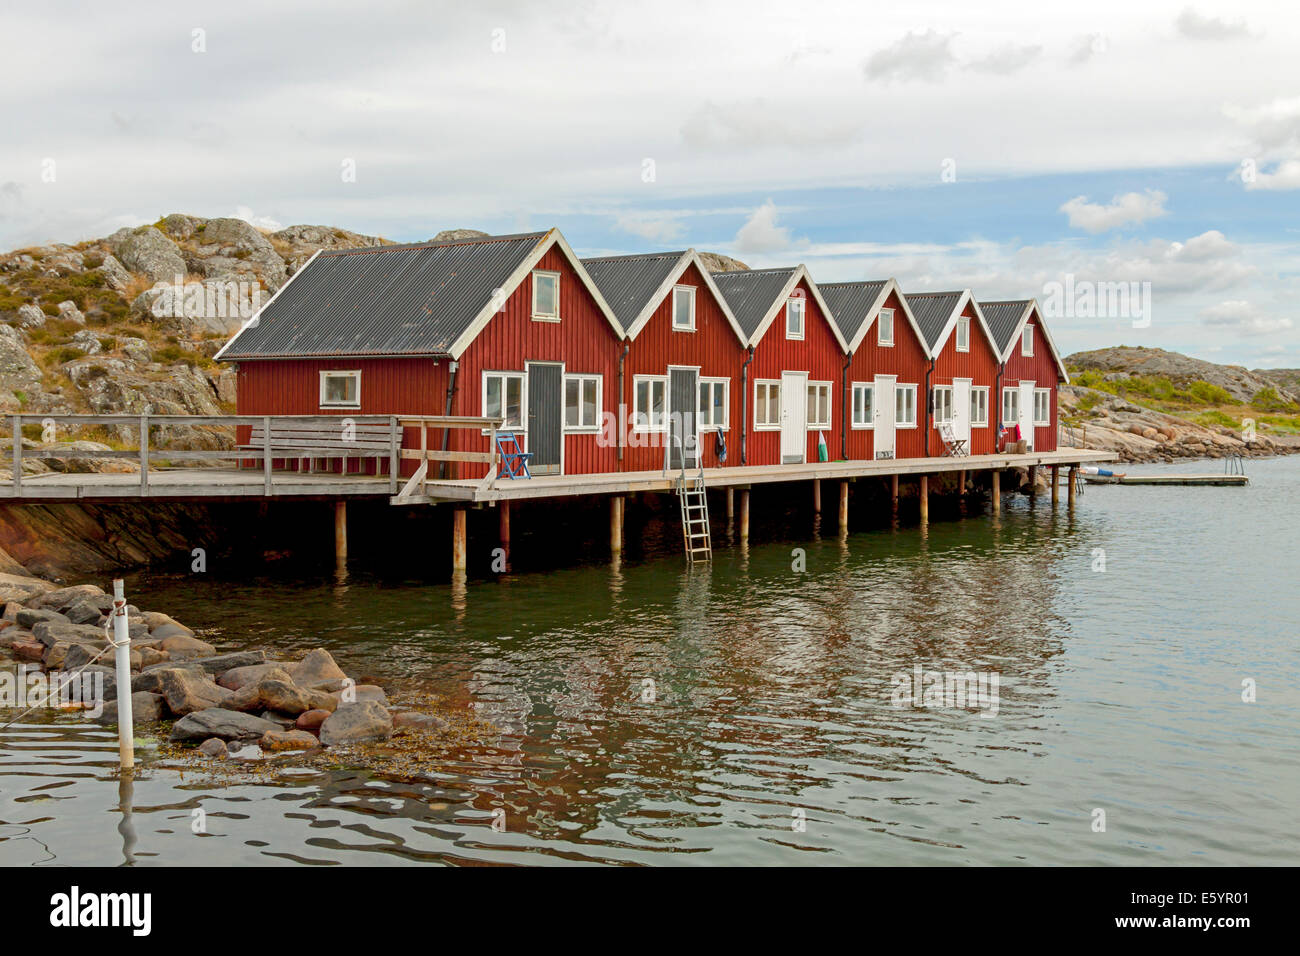 Typically Scandinavian architecture: Red wooden cottages at ...